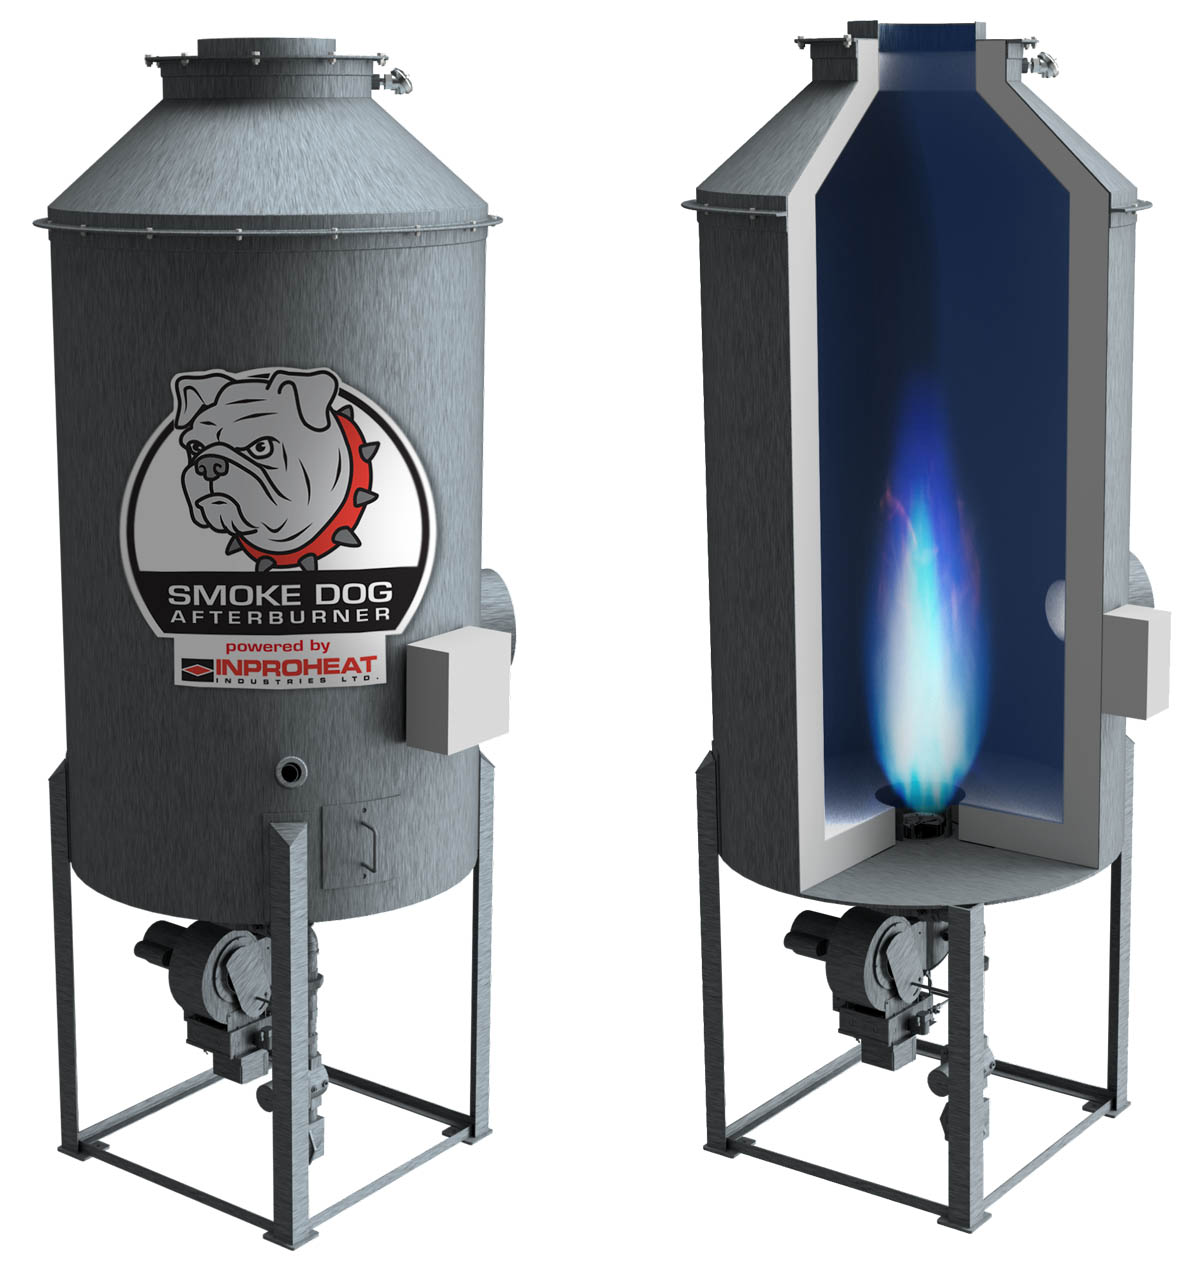 The Smoke Dog Afterburner for Coffee Roasters